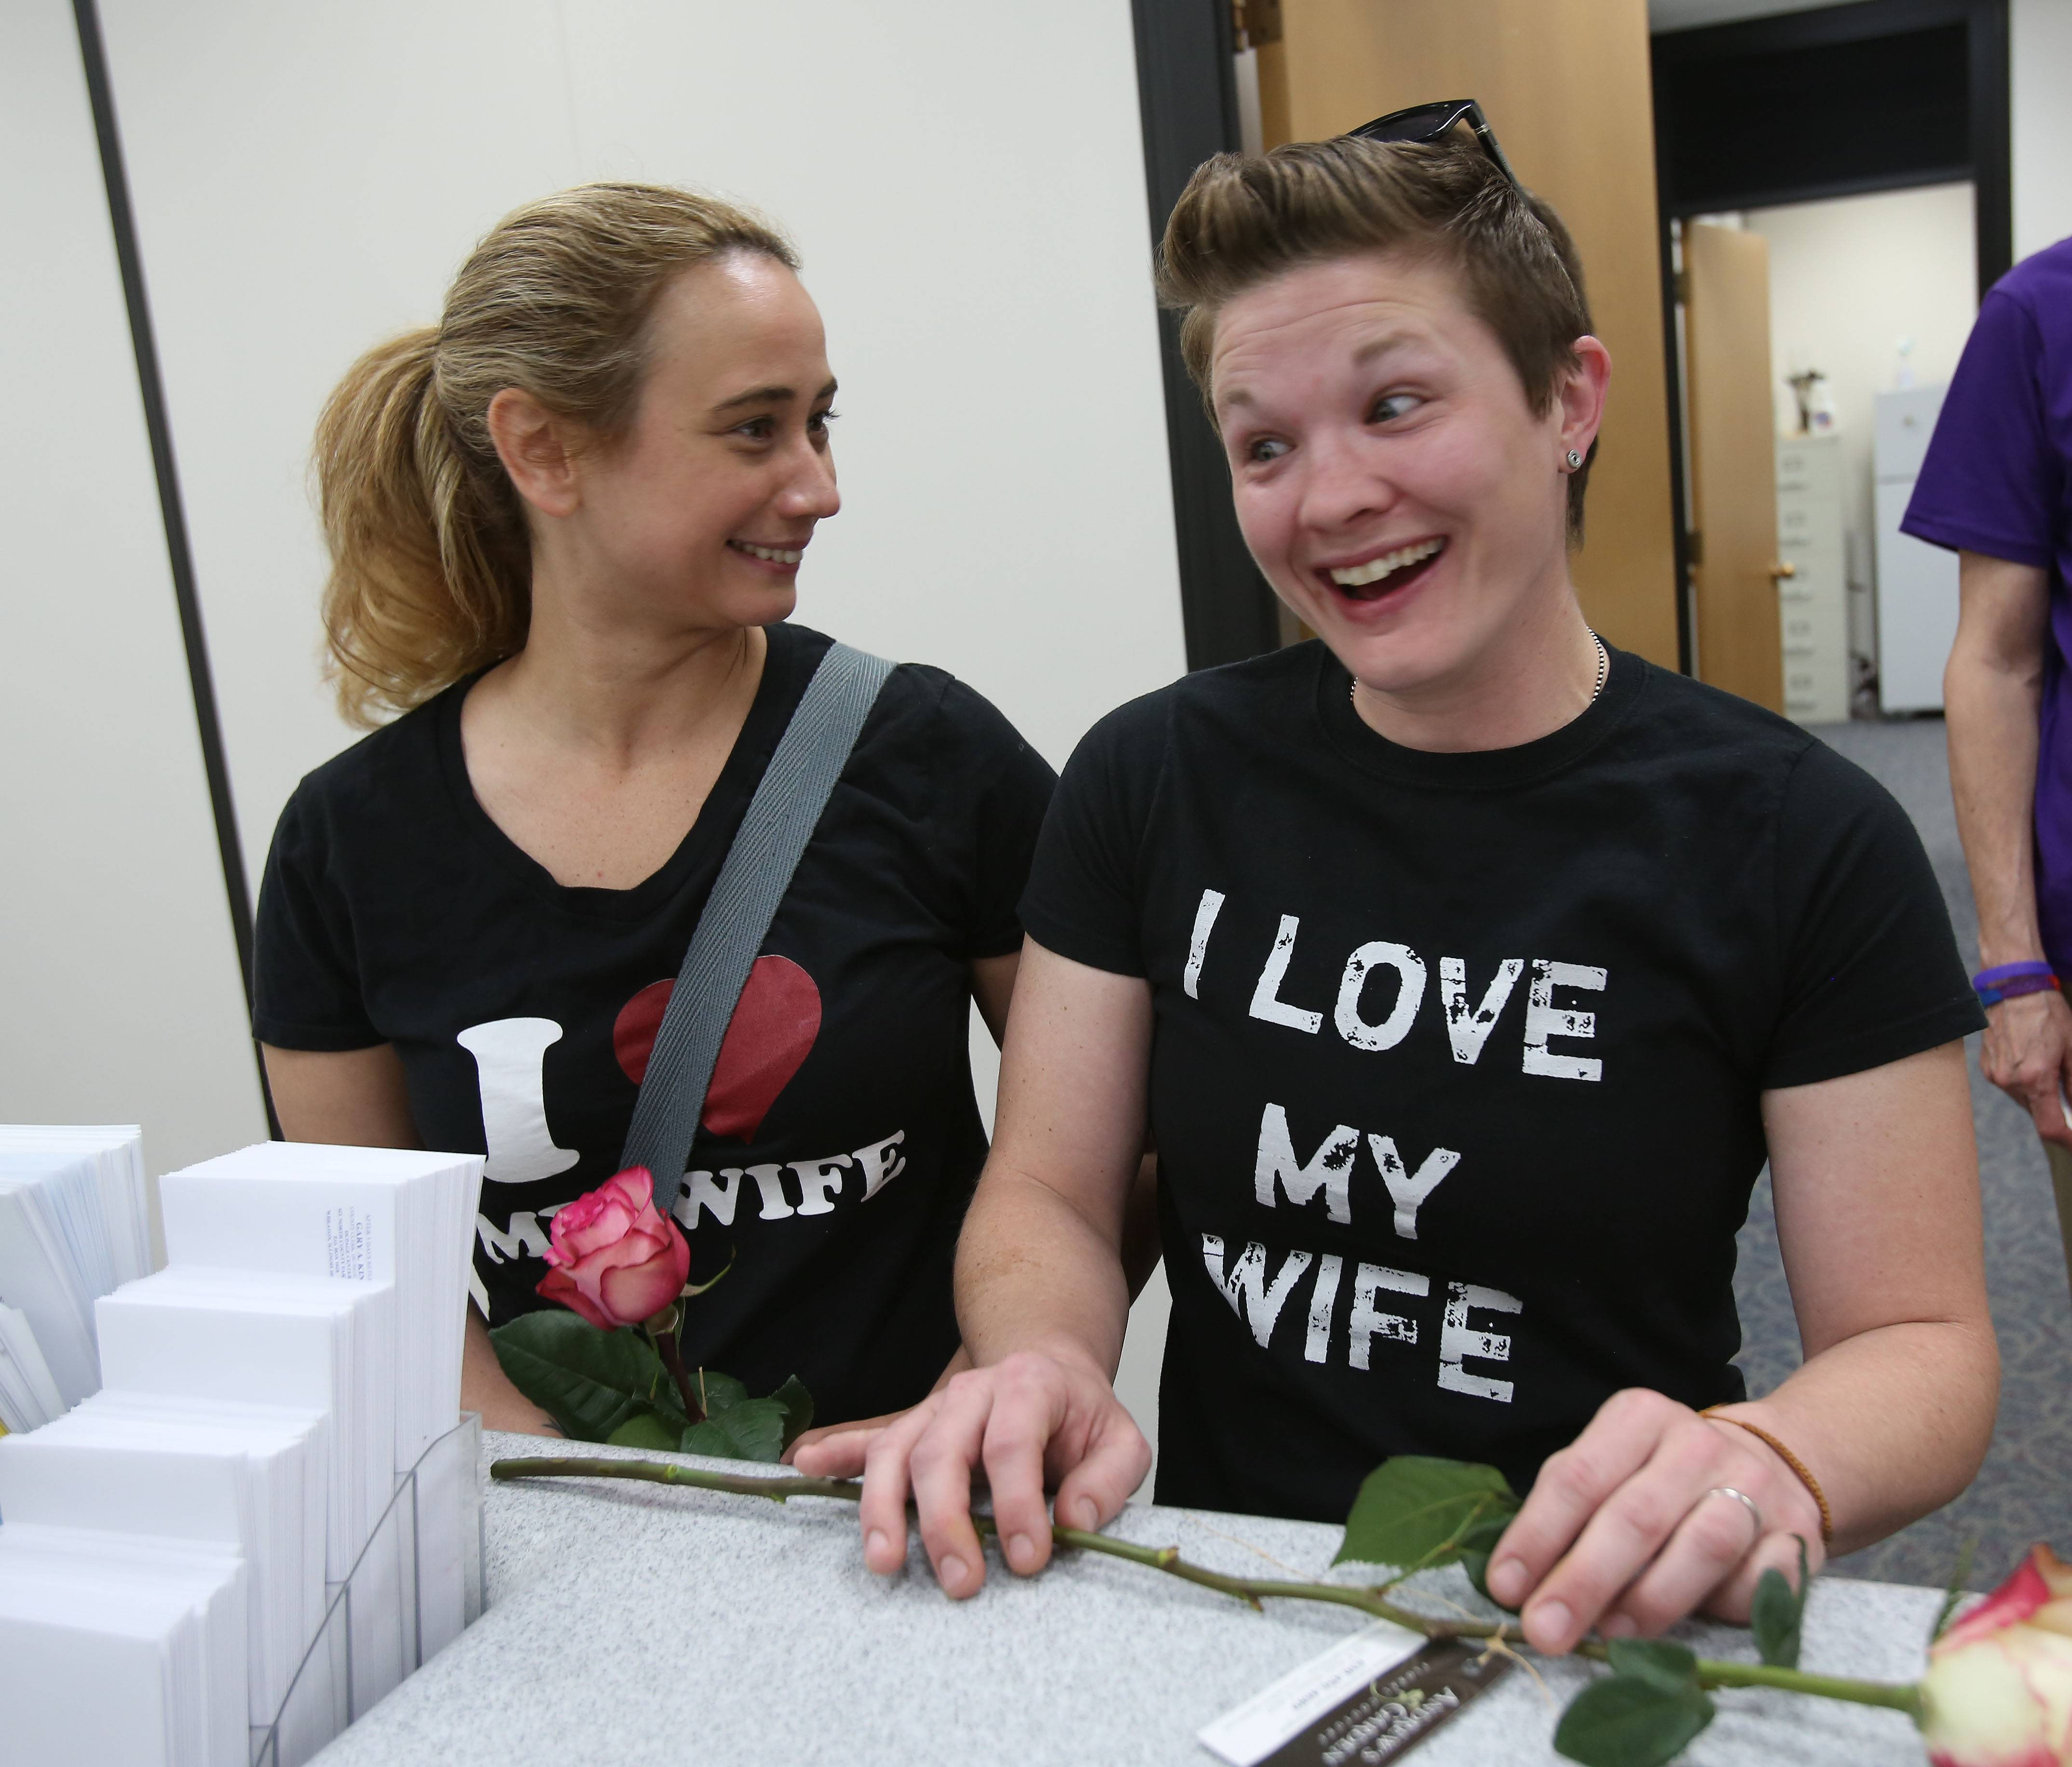 Alicia Atkinson, left and Laurin Fabry, right, of Eola, are happy to convert their civil union to a marriage license Monday at the DuPage County Clerk's office in Wheaton.